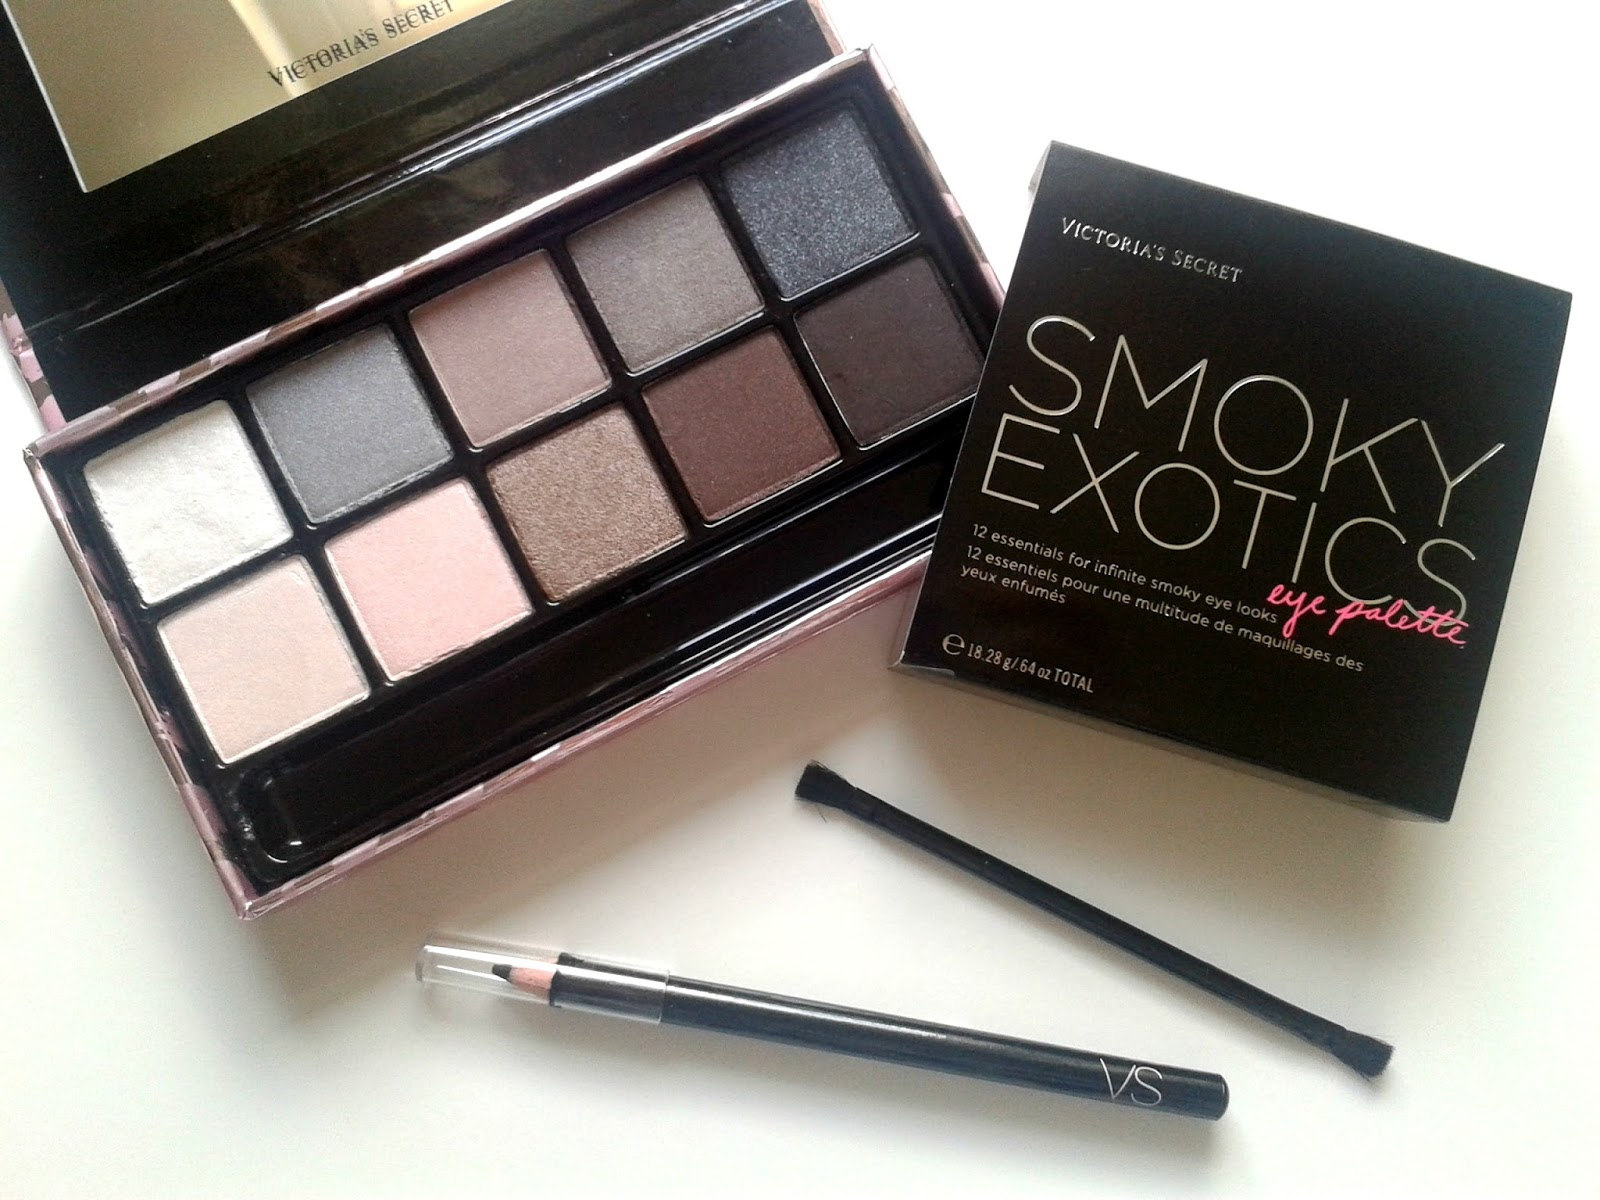 Victoria's Secret Smoky Exotics Eye Palette Beauty Review The London Perfume Company